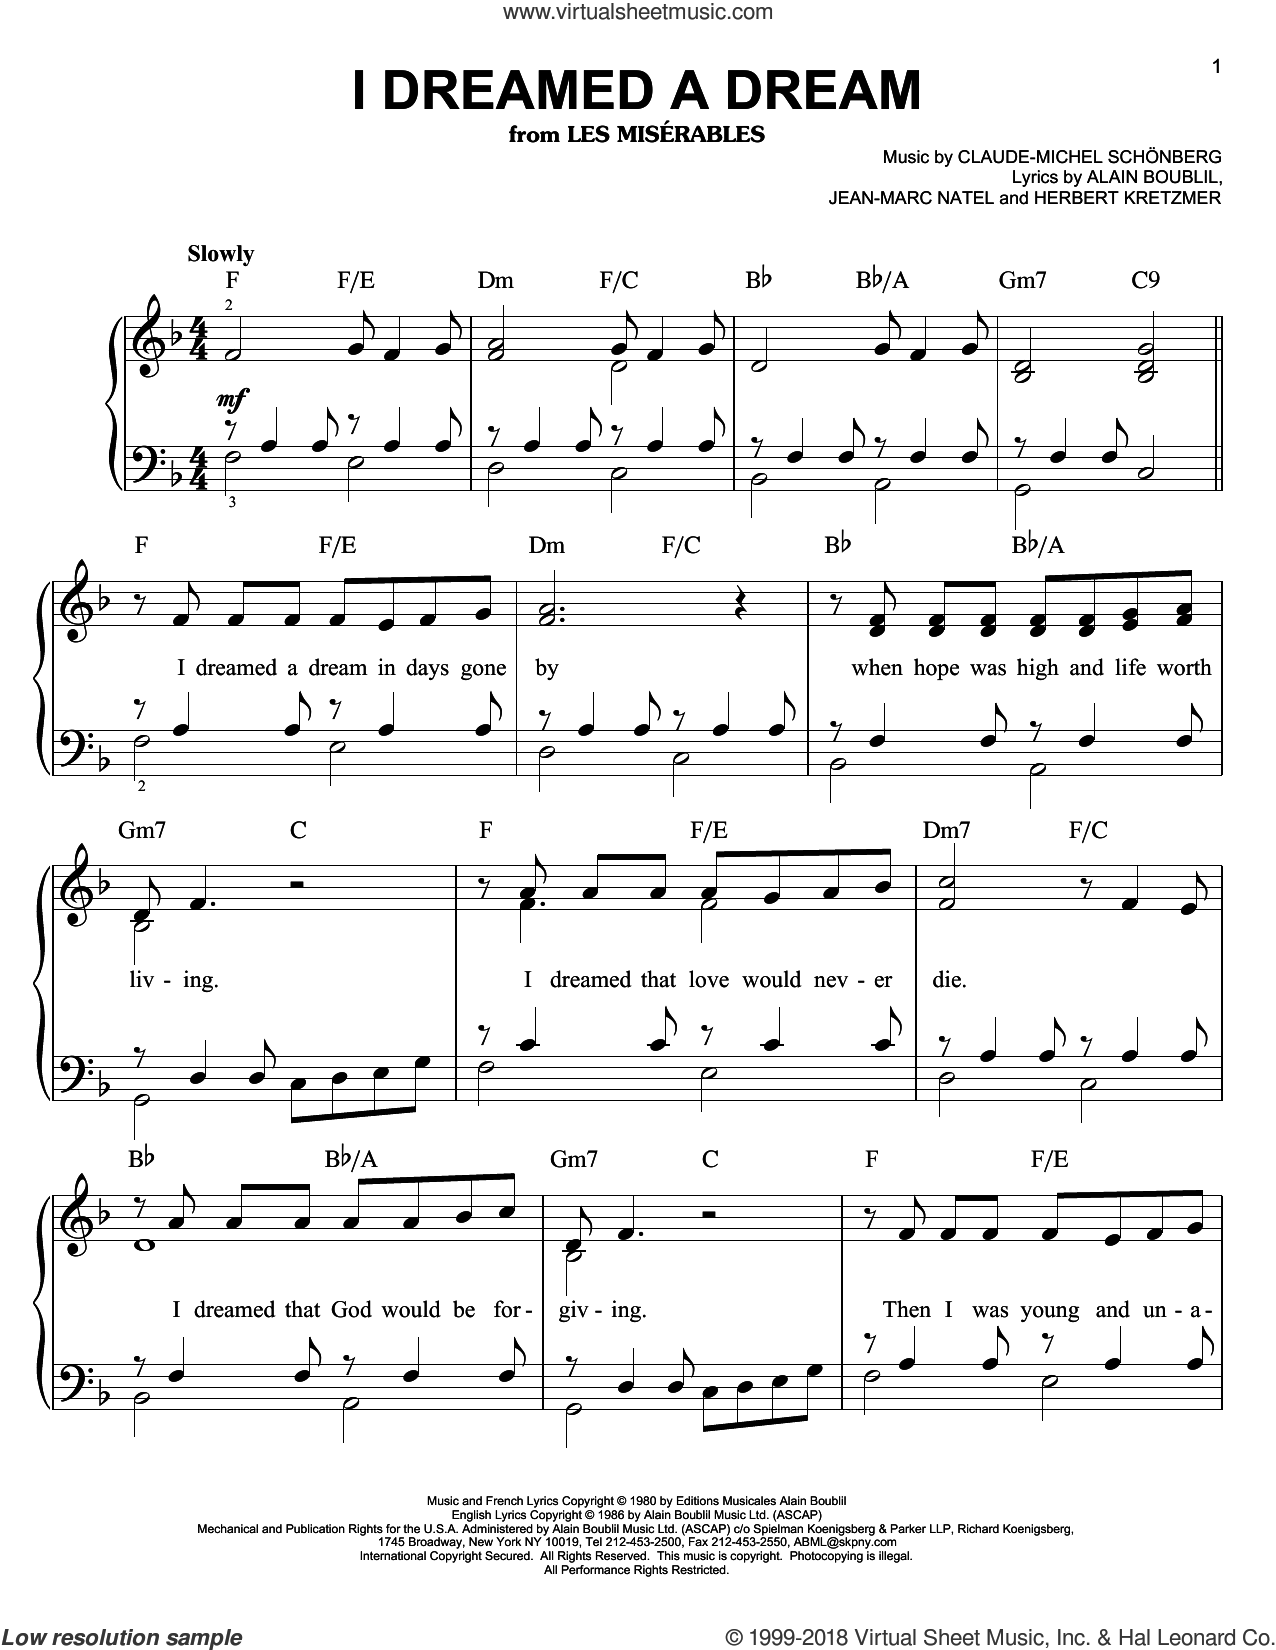 I Dreamed A Dream, (easy) sheet music for piano solo by Claude-Michel Schonberg, Les Miserables (Musical), Miscellaneous, Alain Boublil, Herbert Kretzmer and Jean-Marc Natel, easy skill level